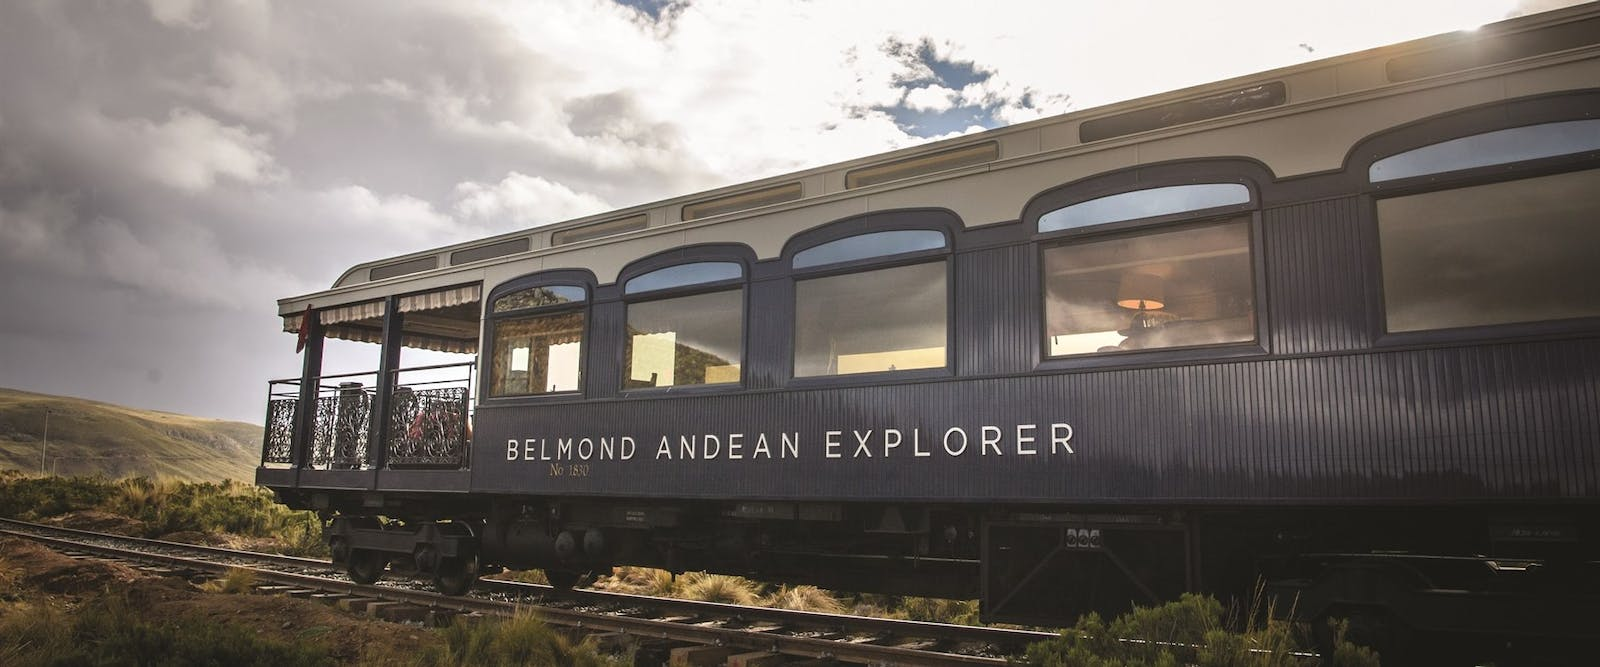 exterior view, Andean Explorer, A Belmond Train, Peru